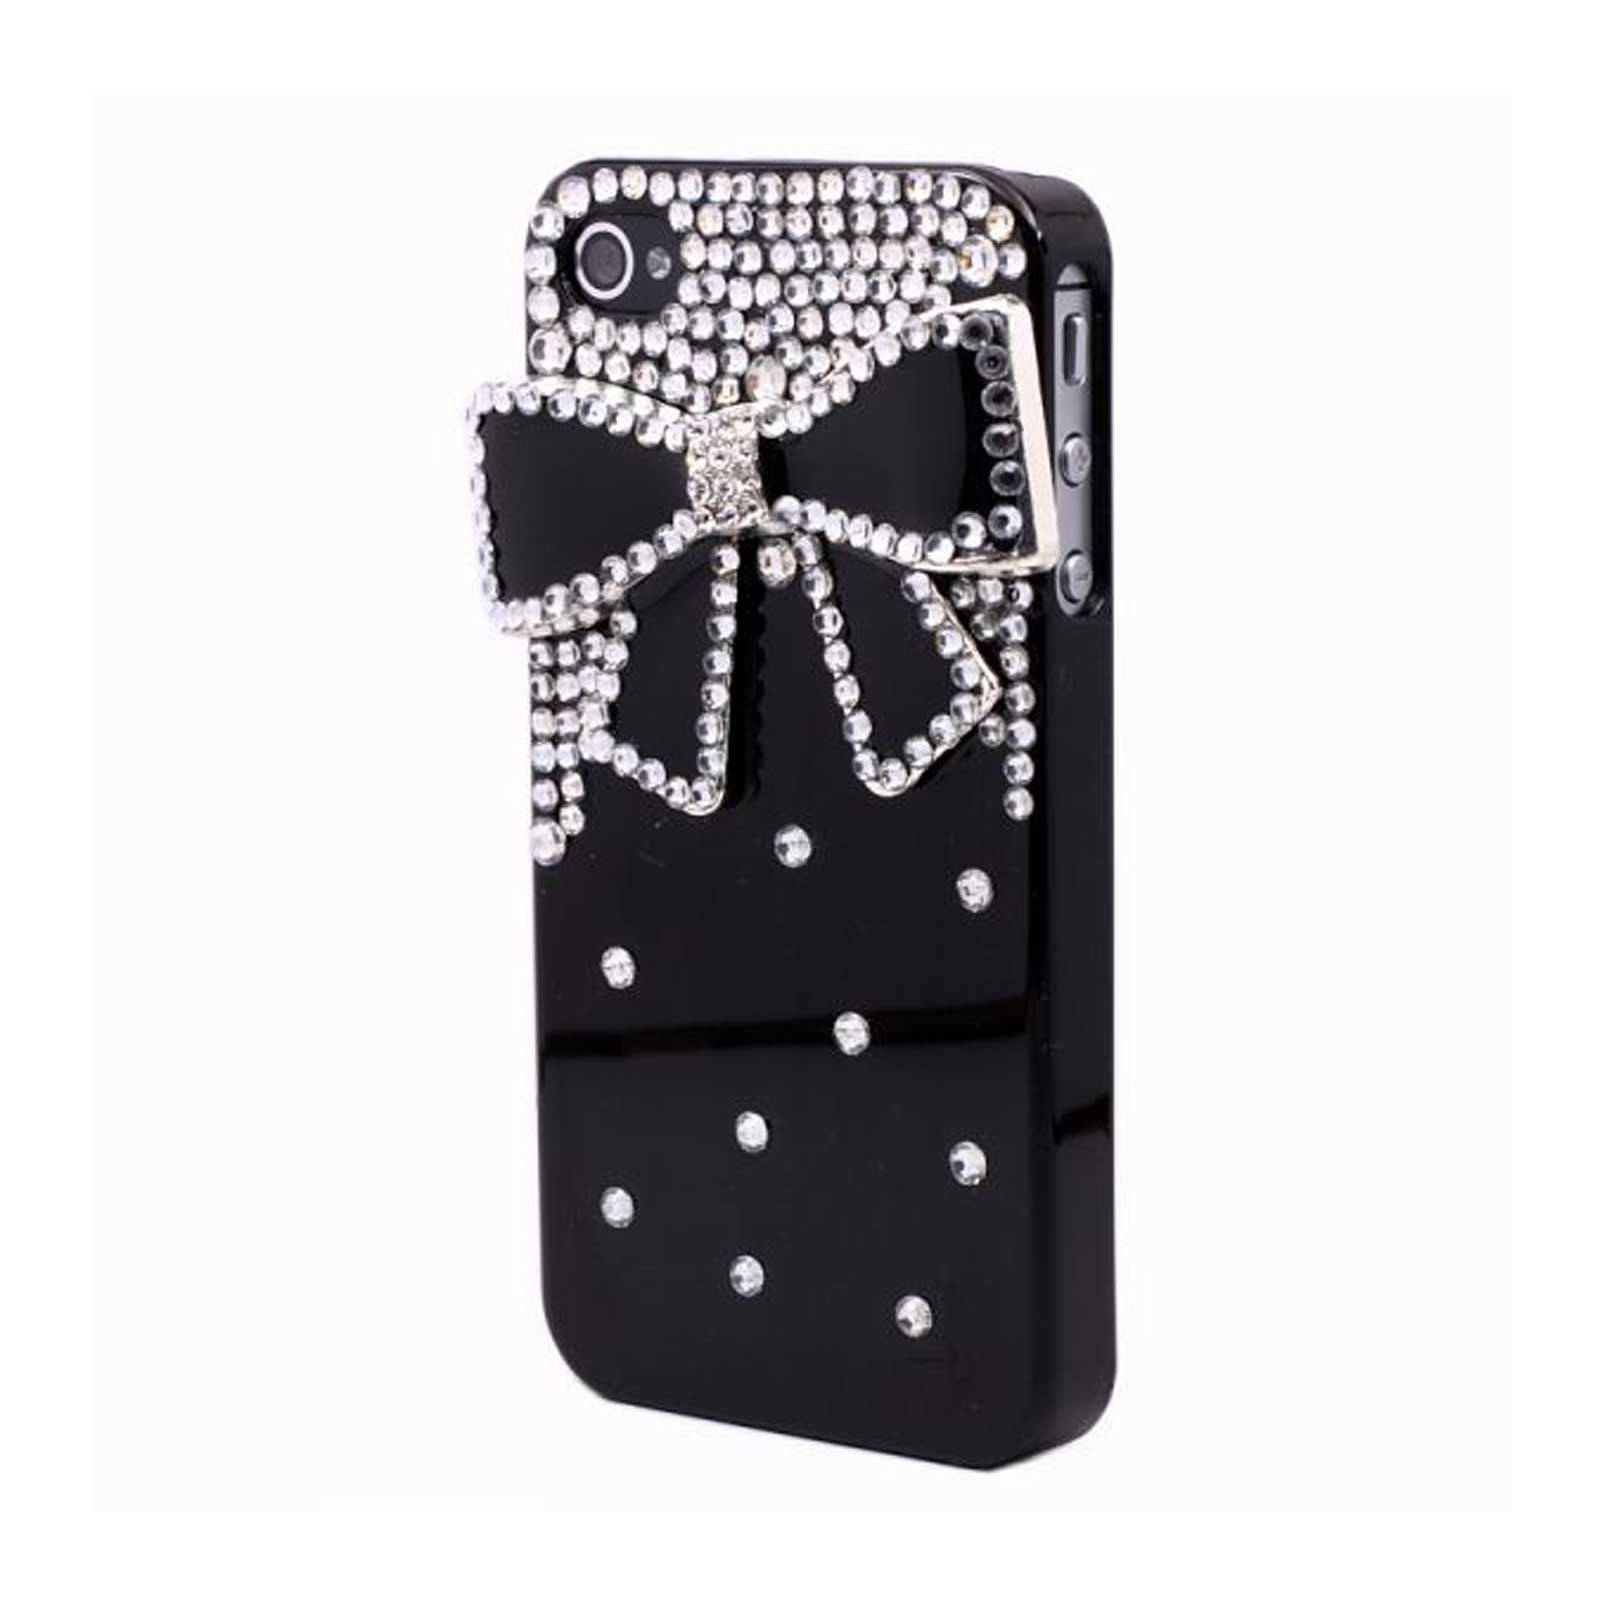 Apple iphone 4 4s mobile cover designer diamond luxury for Mobel luxus designer